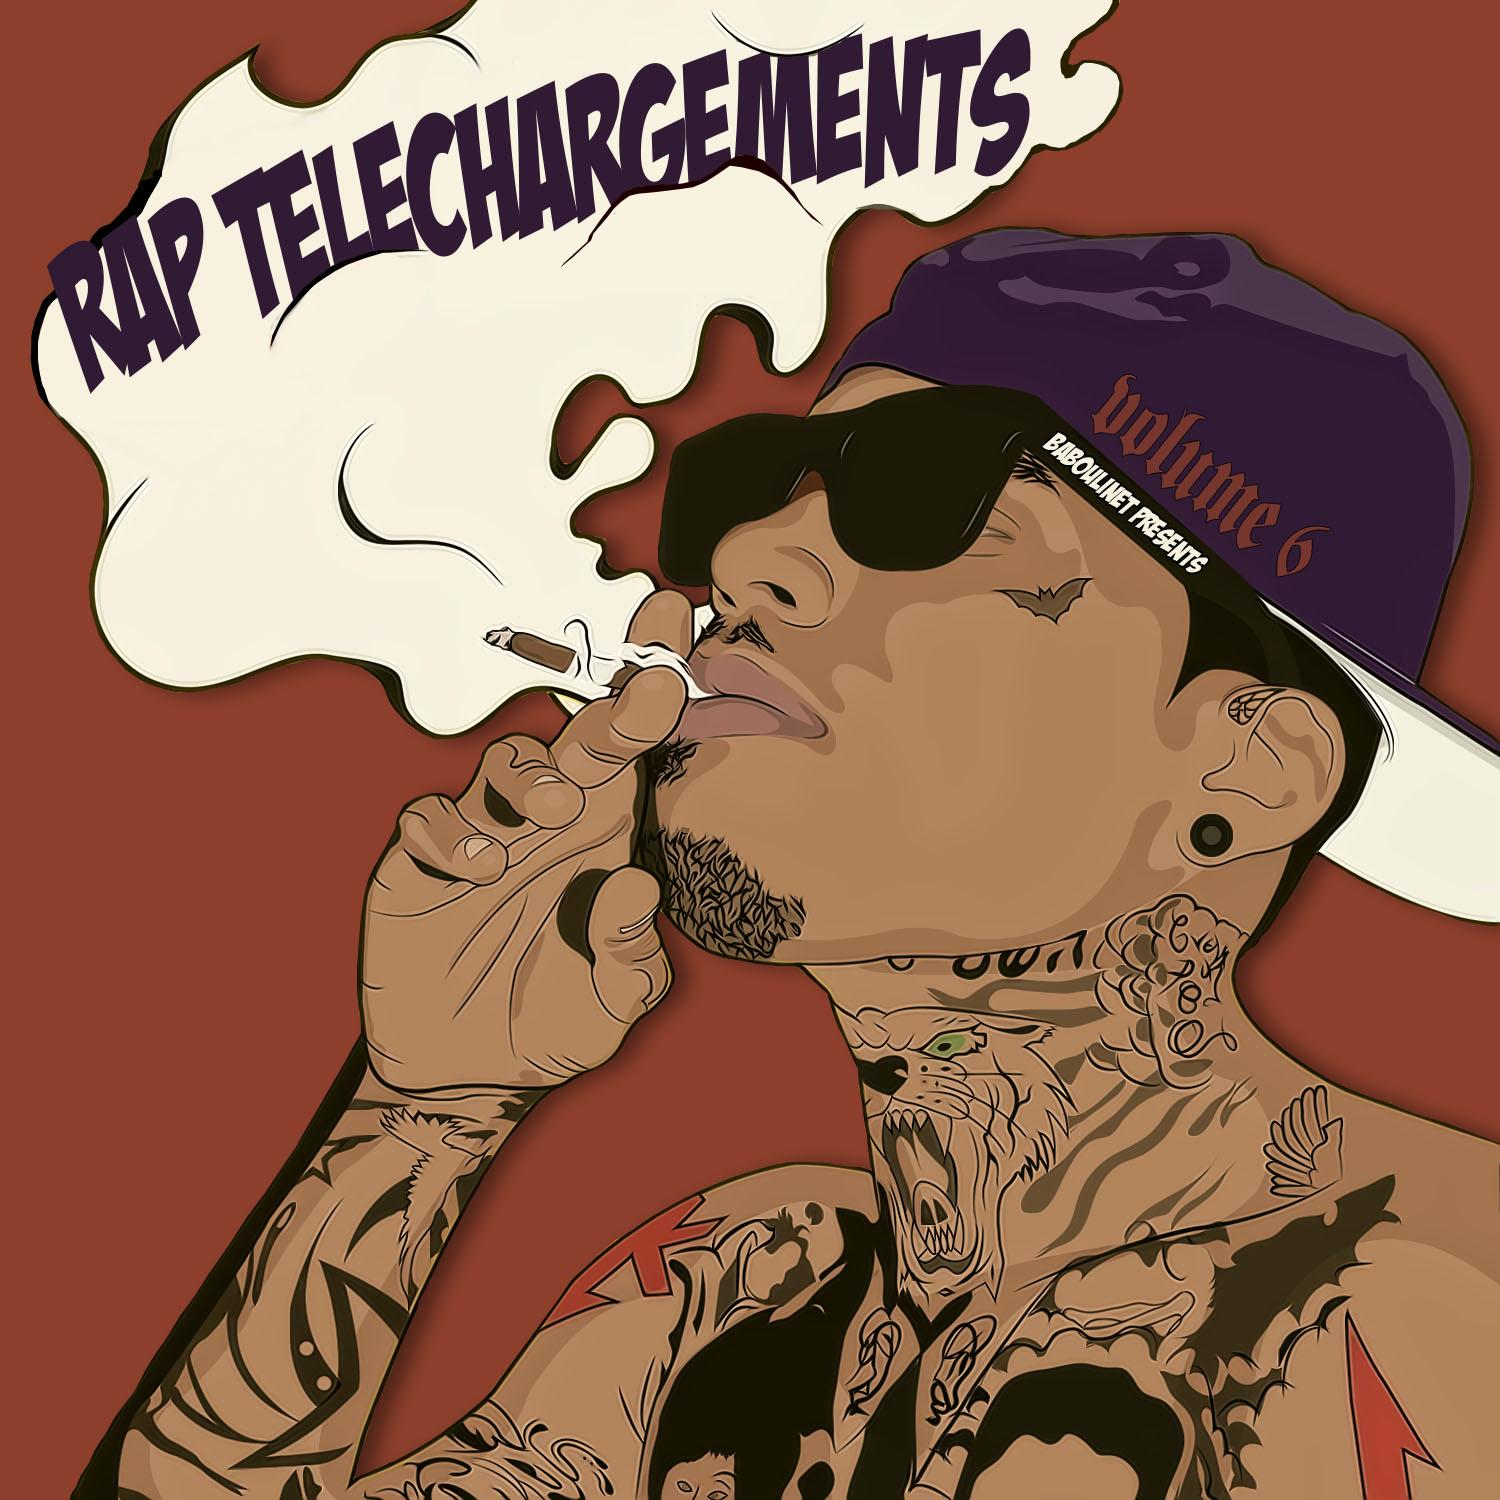 Rap Telechargements Vol.6 (2013)